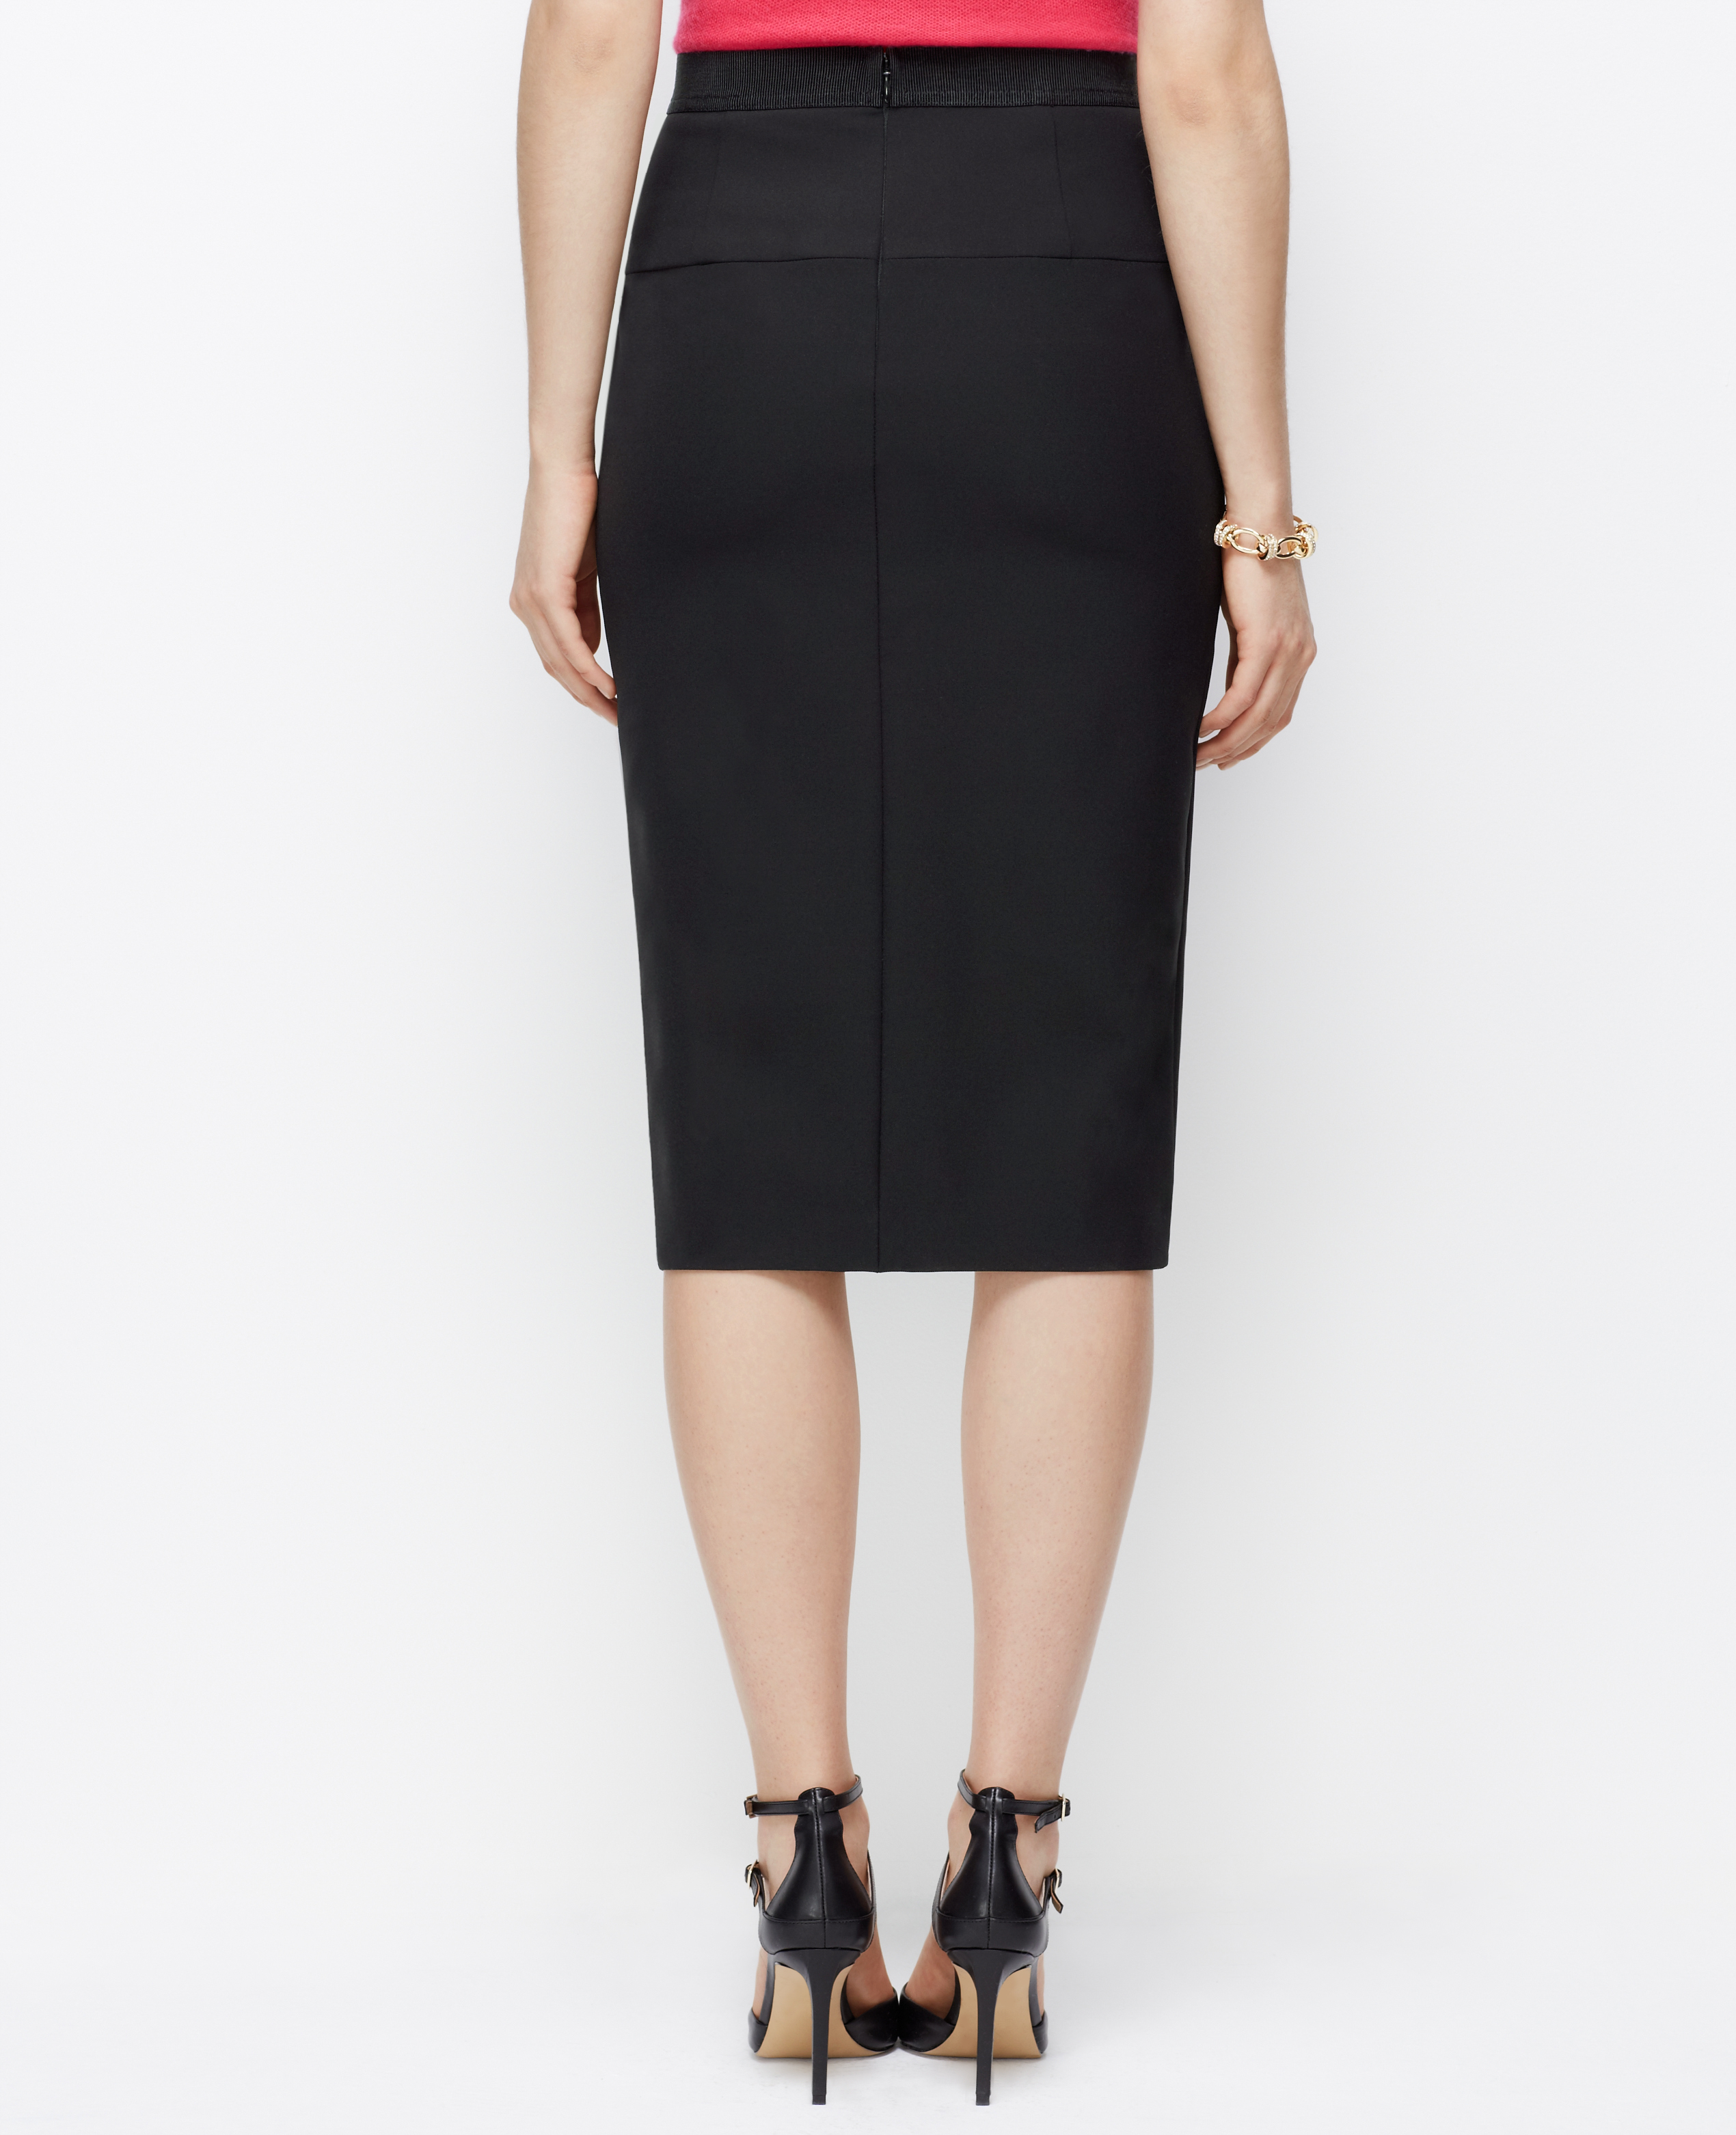 Find beautiful, flattering skirts for every occasion including on-trend midi skirts, polished pencil skirts, elegant A-line skirts and more, all designed specifically for petite frames.